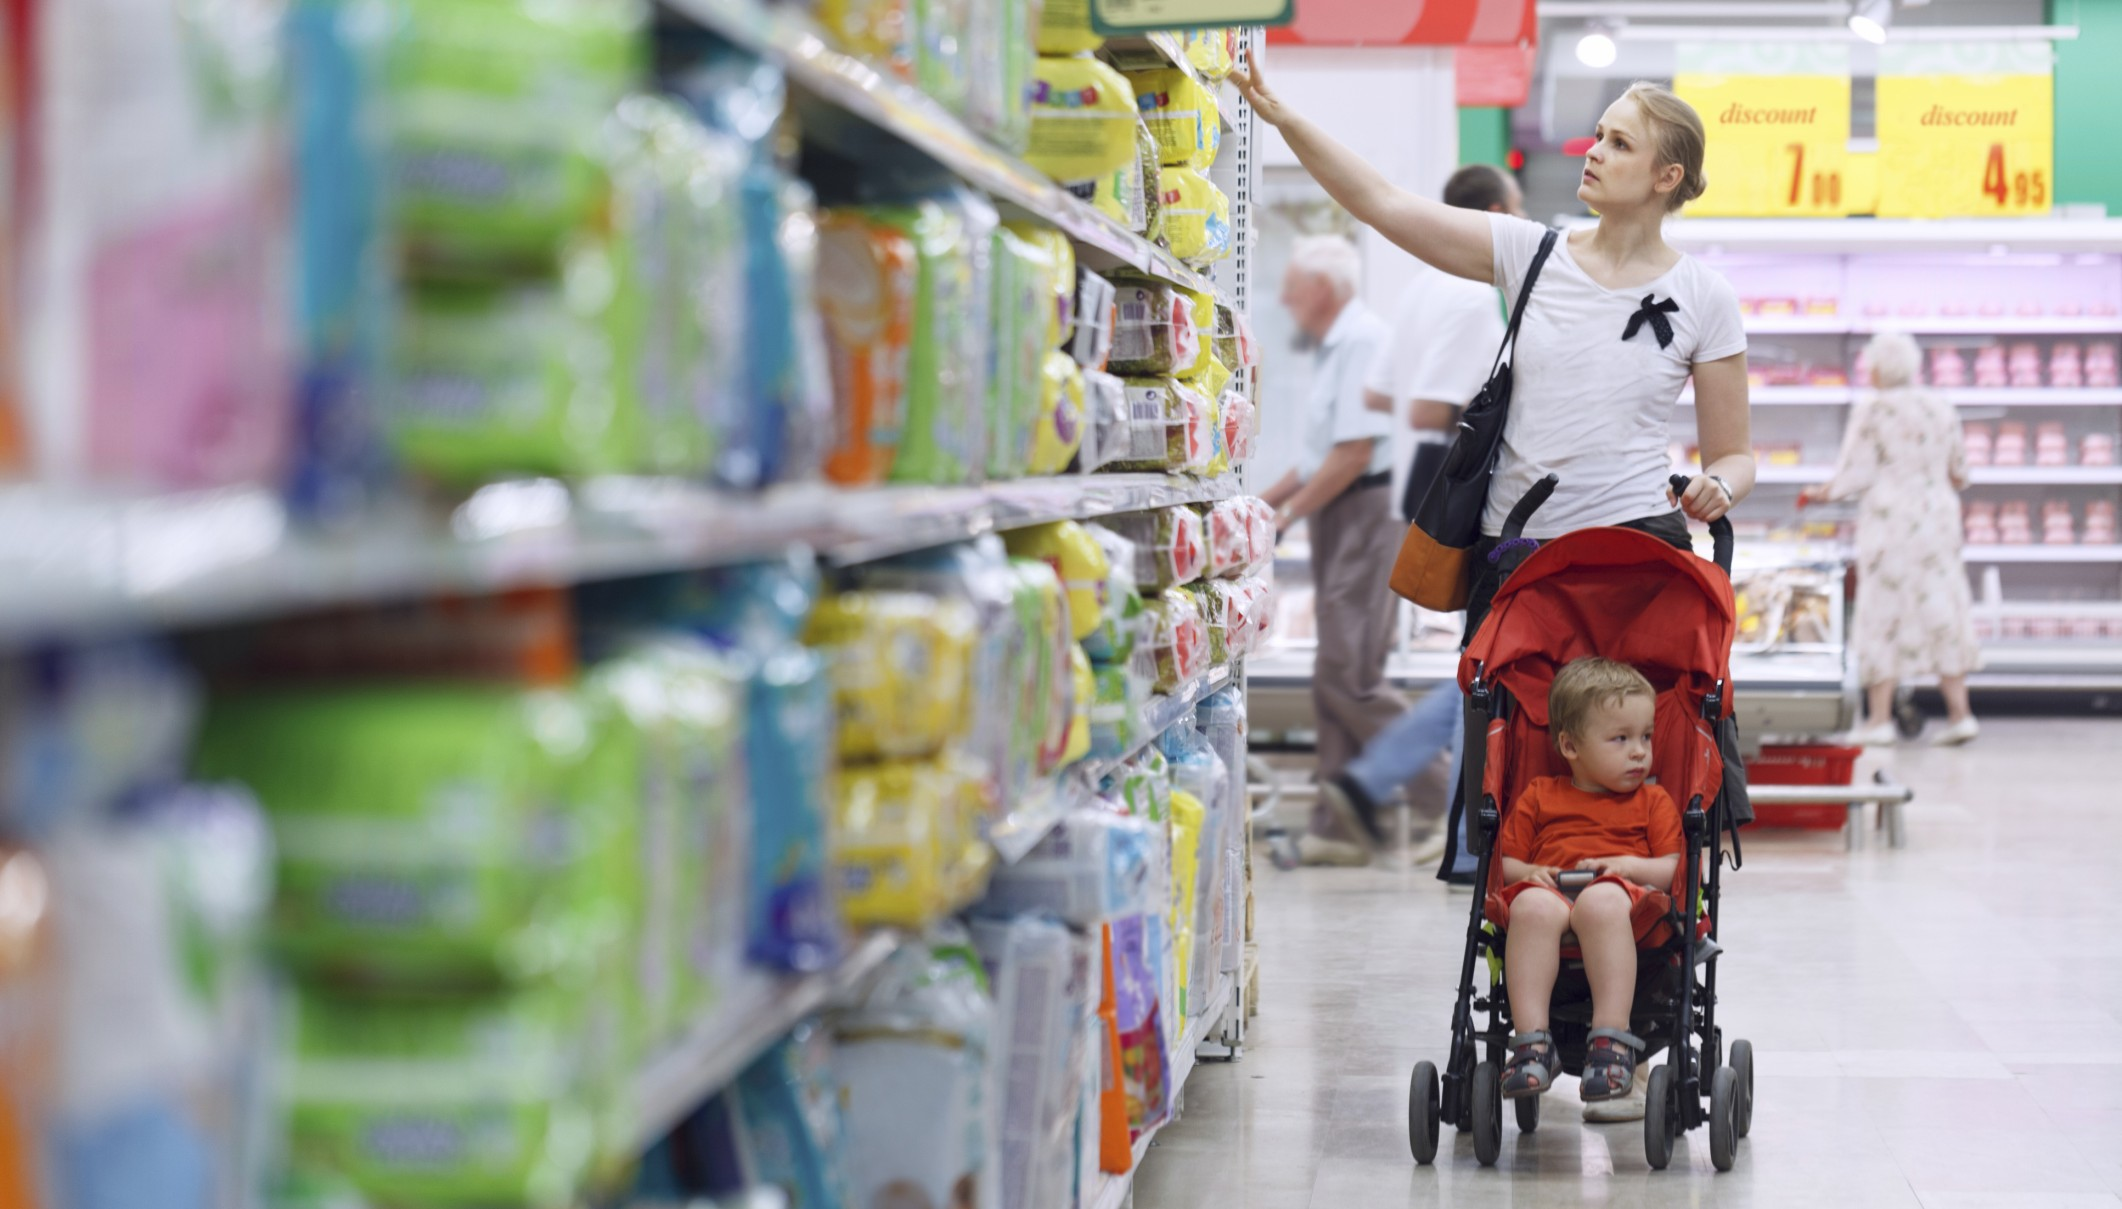 mom shopping in store